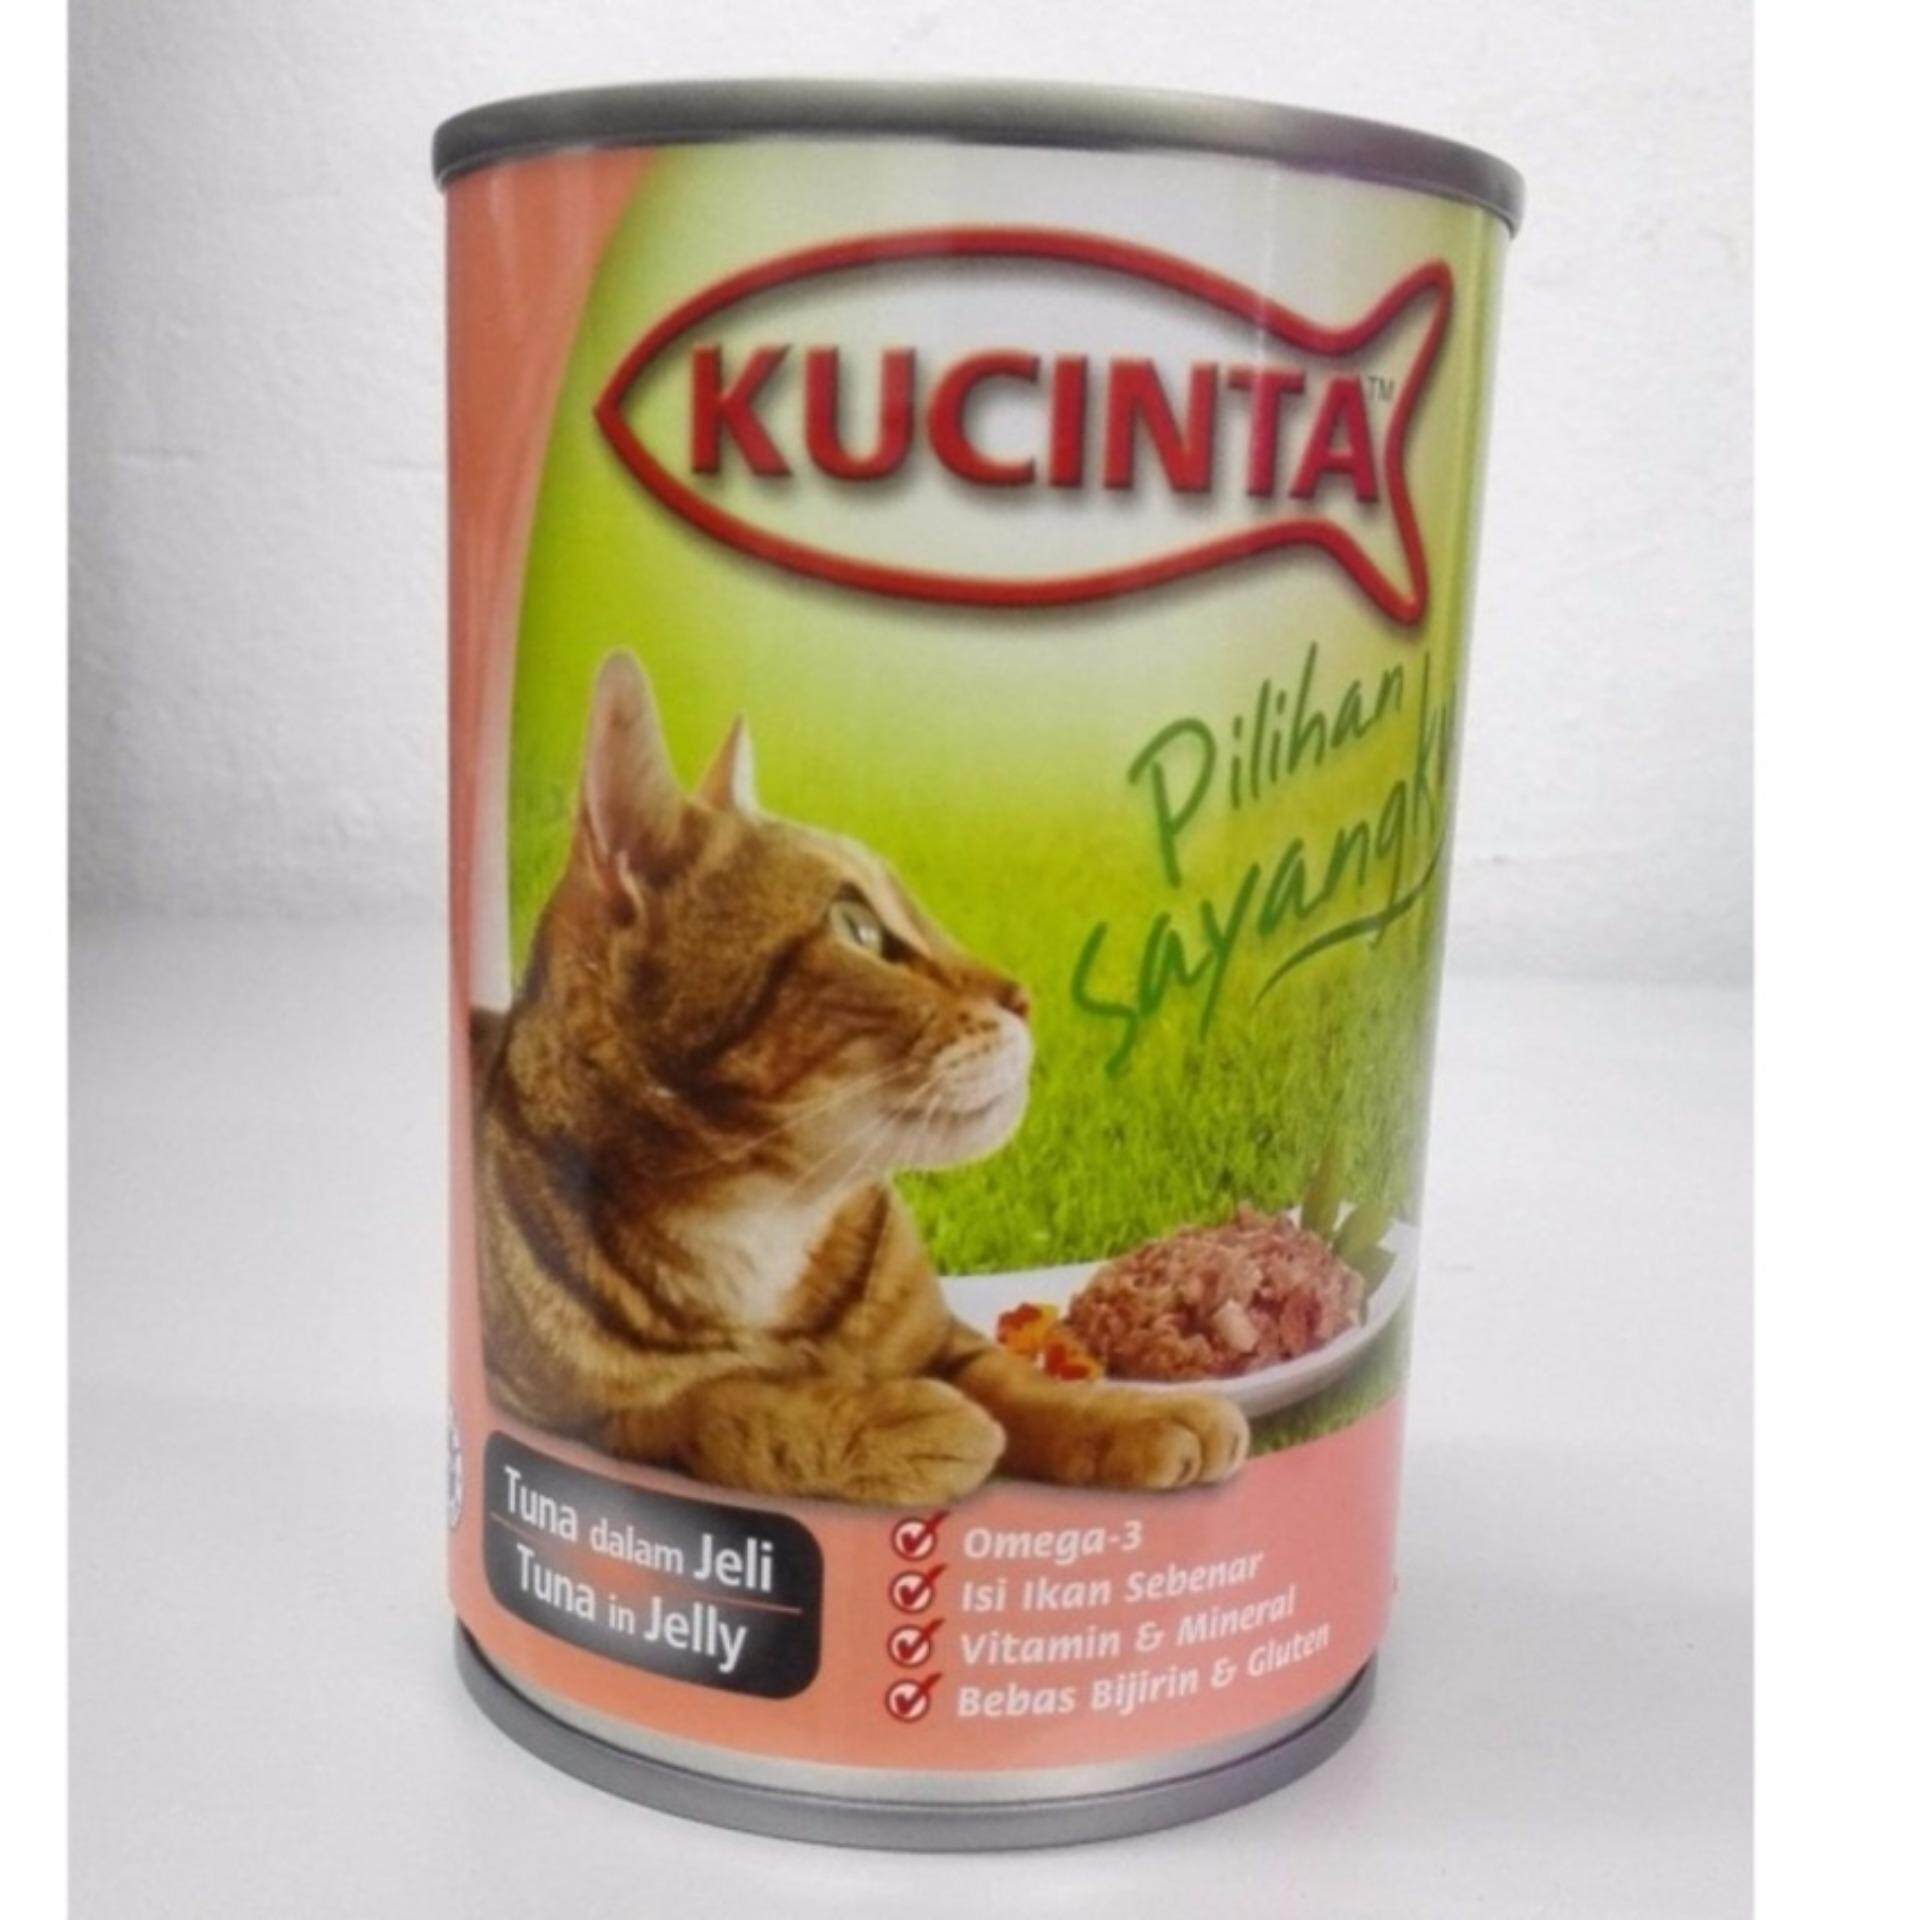 Kucinta Tuna in Jelly Canned Food 400G (24 CANS)